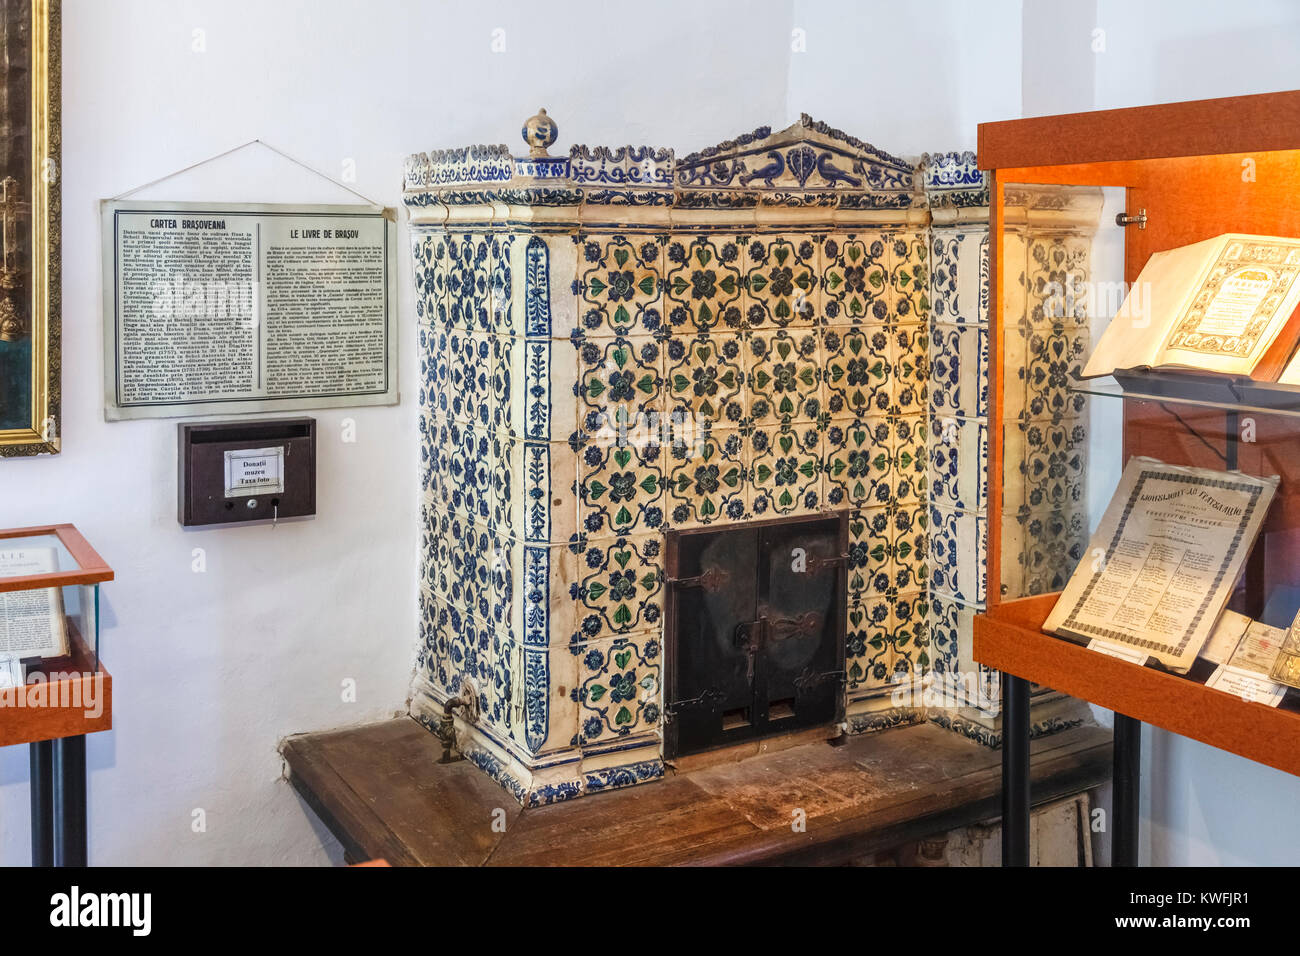 Old-fashioned ceramic stove heater in the First Romanian School Museum, Schei district, Brasov, a city in the central - Stock Image